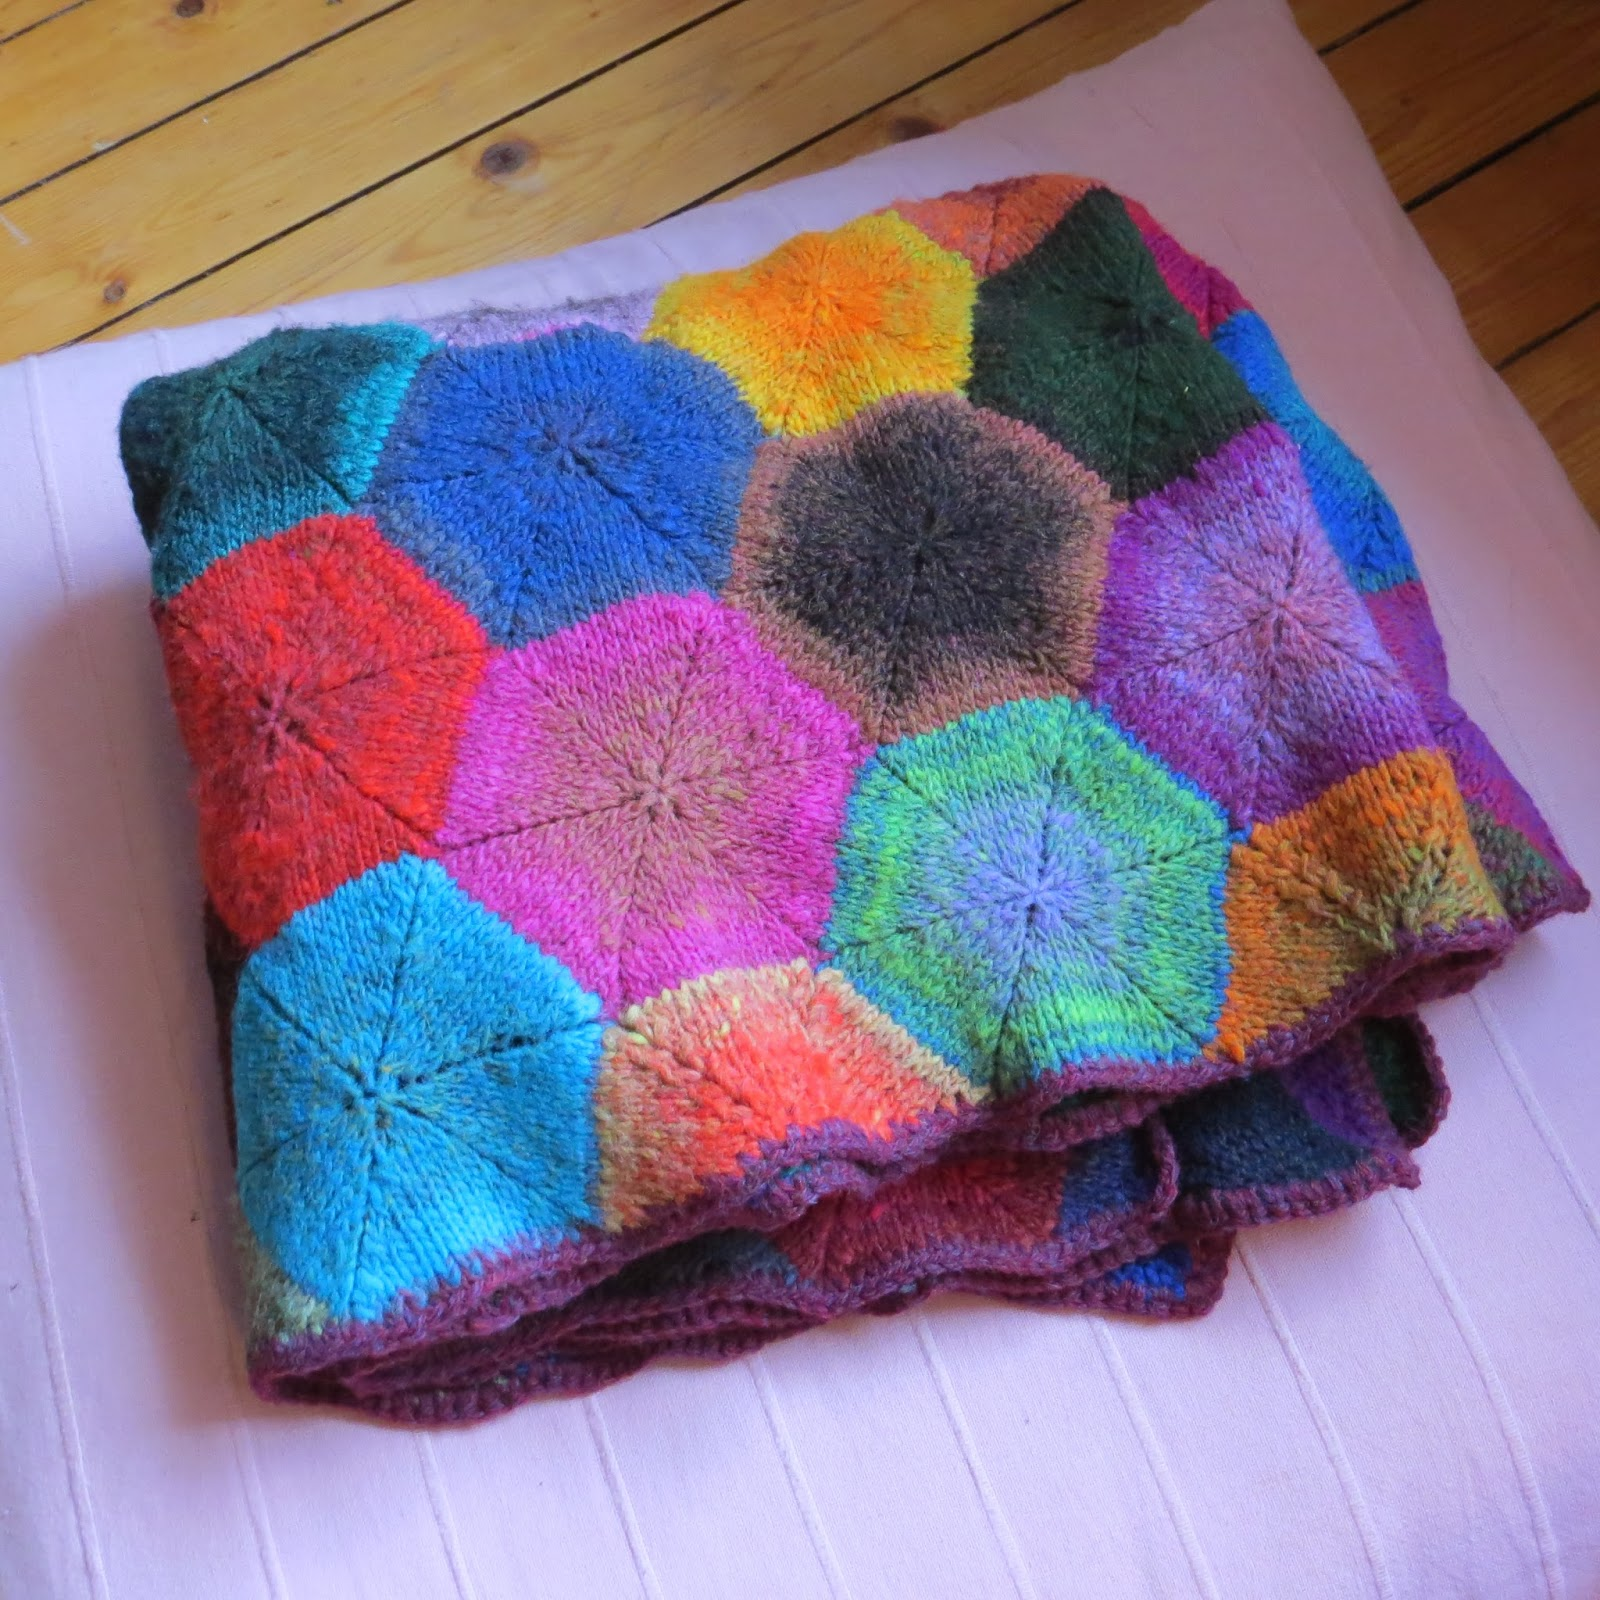 A colourful life: the hexagon blanket odyssey is finally over